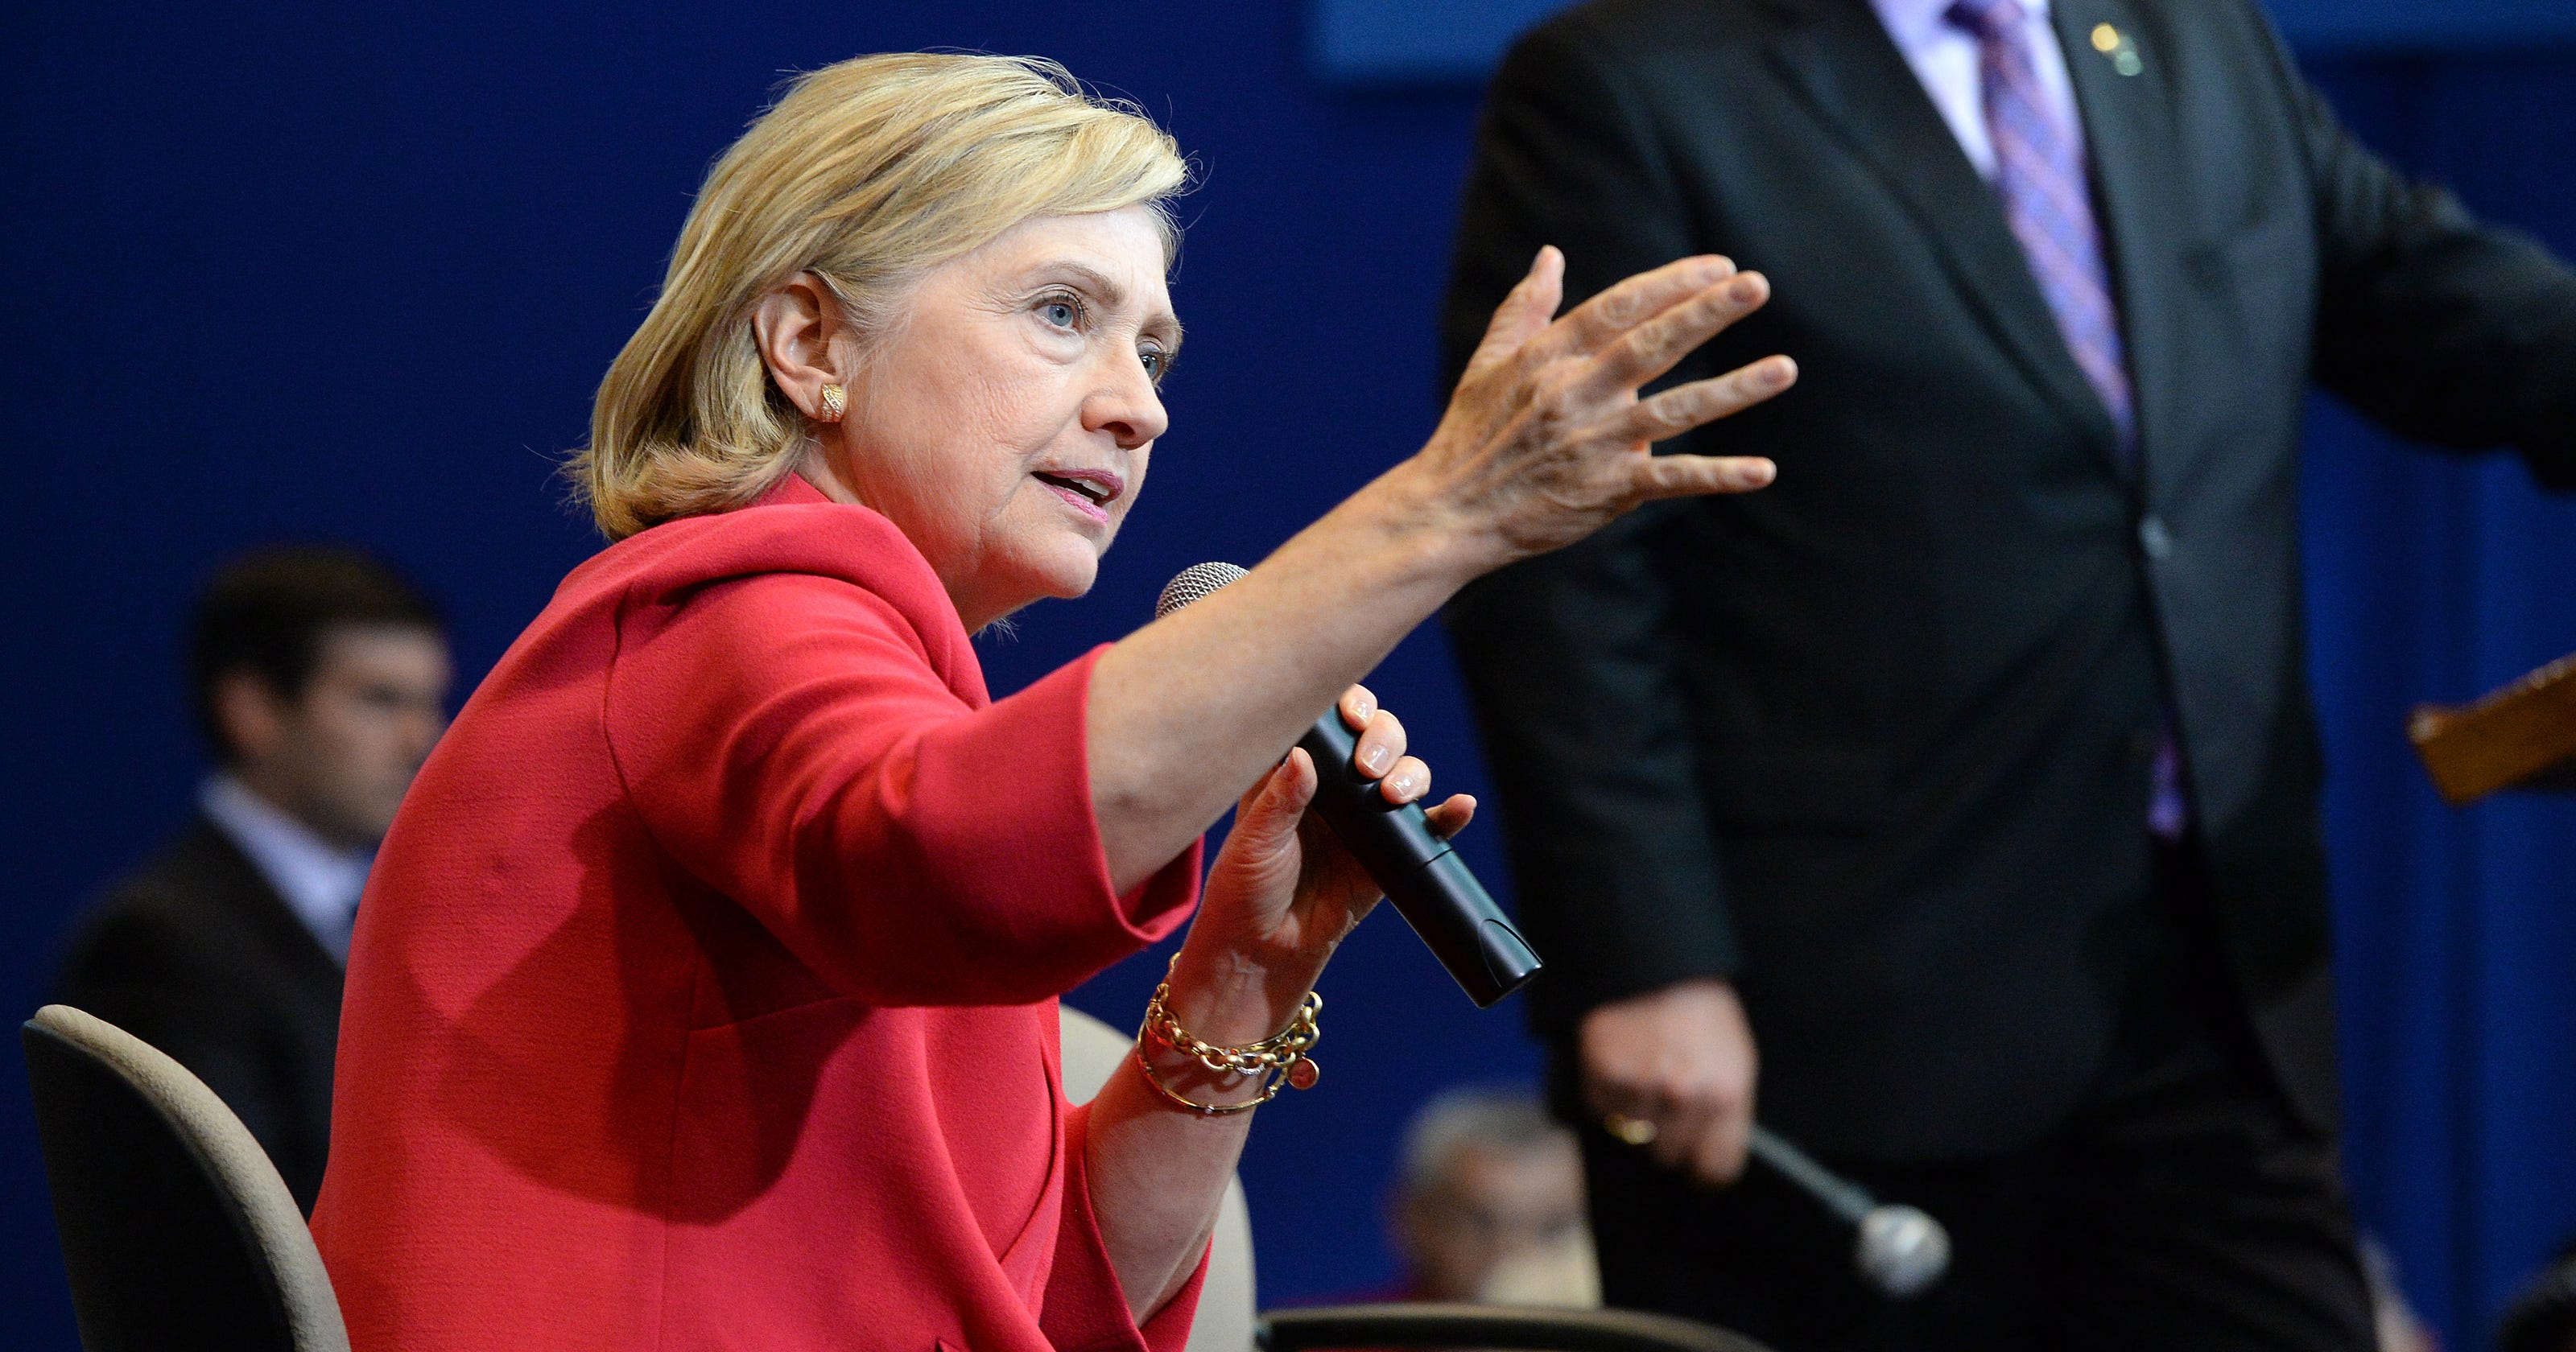 Clinton campaign hits Scott Walker over SC remarks on race